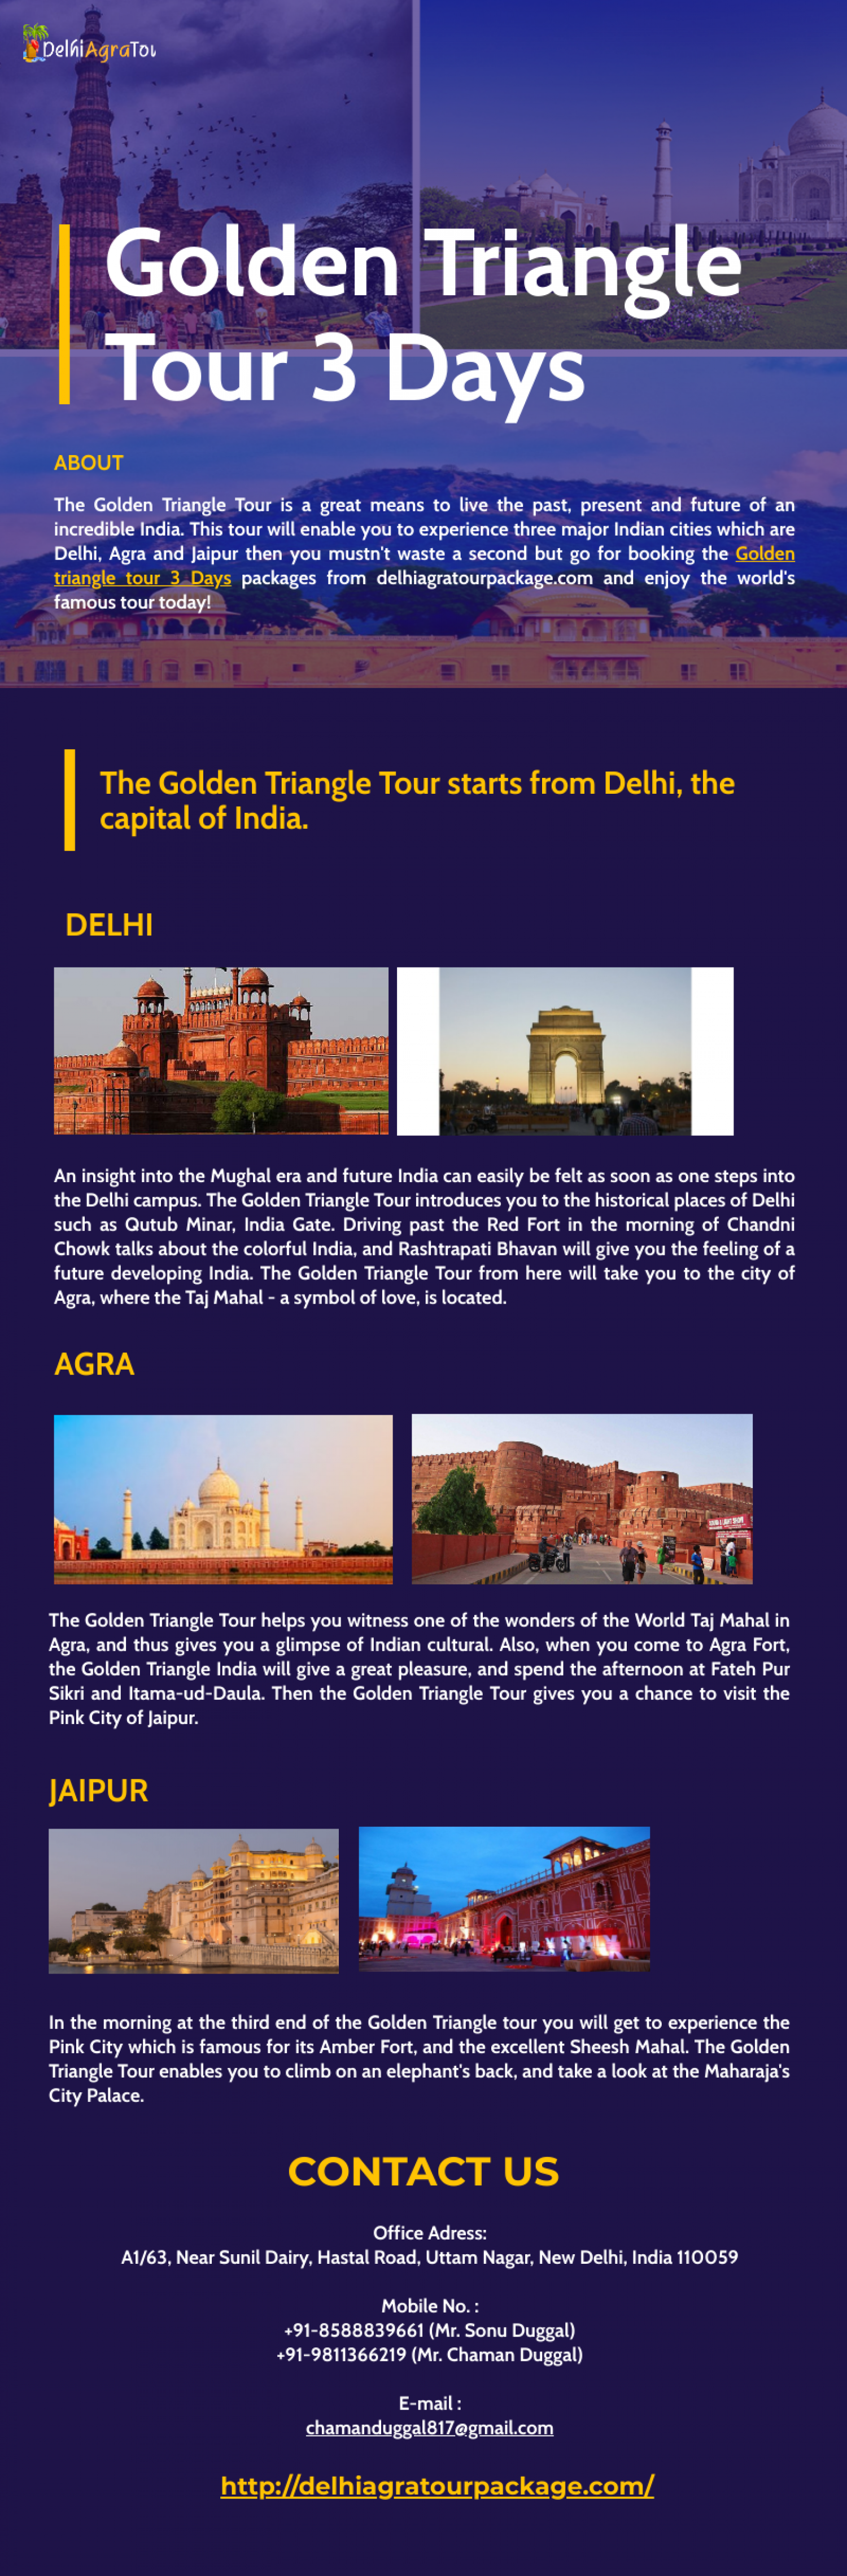 Golden Triangle Tour 3 Days Infographic